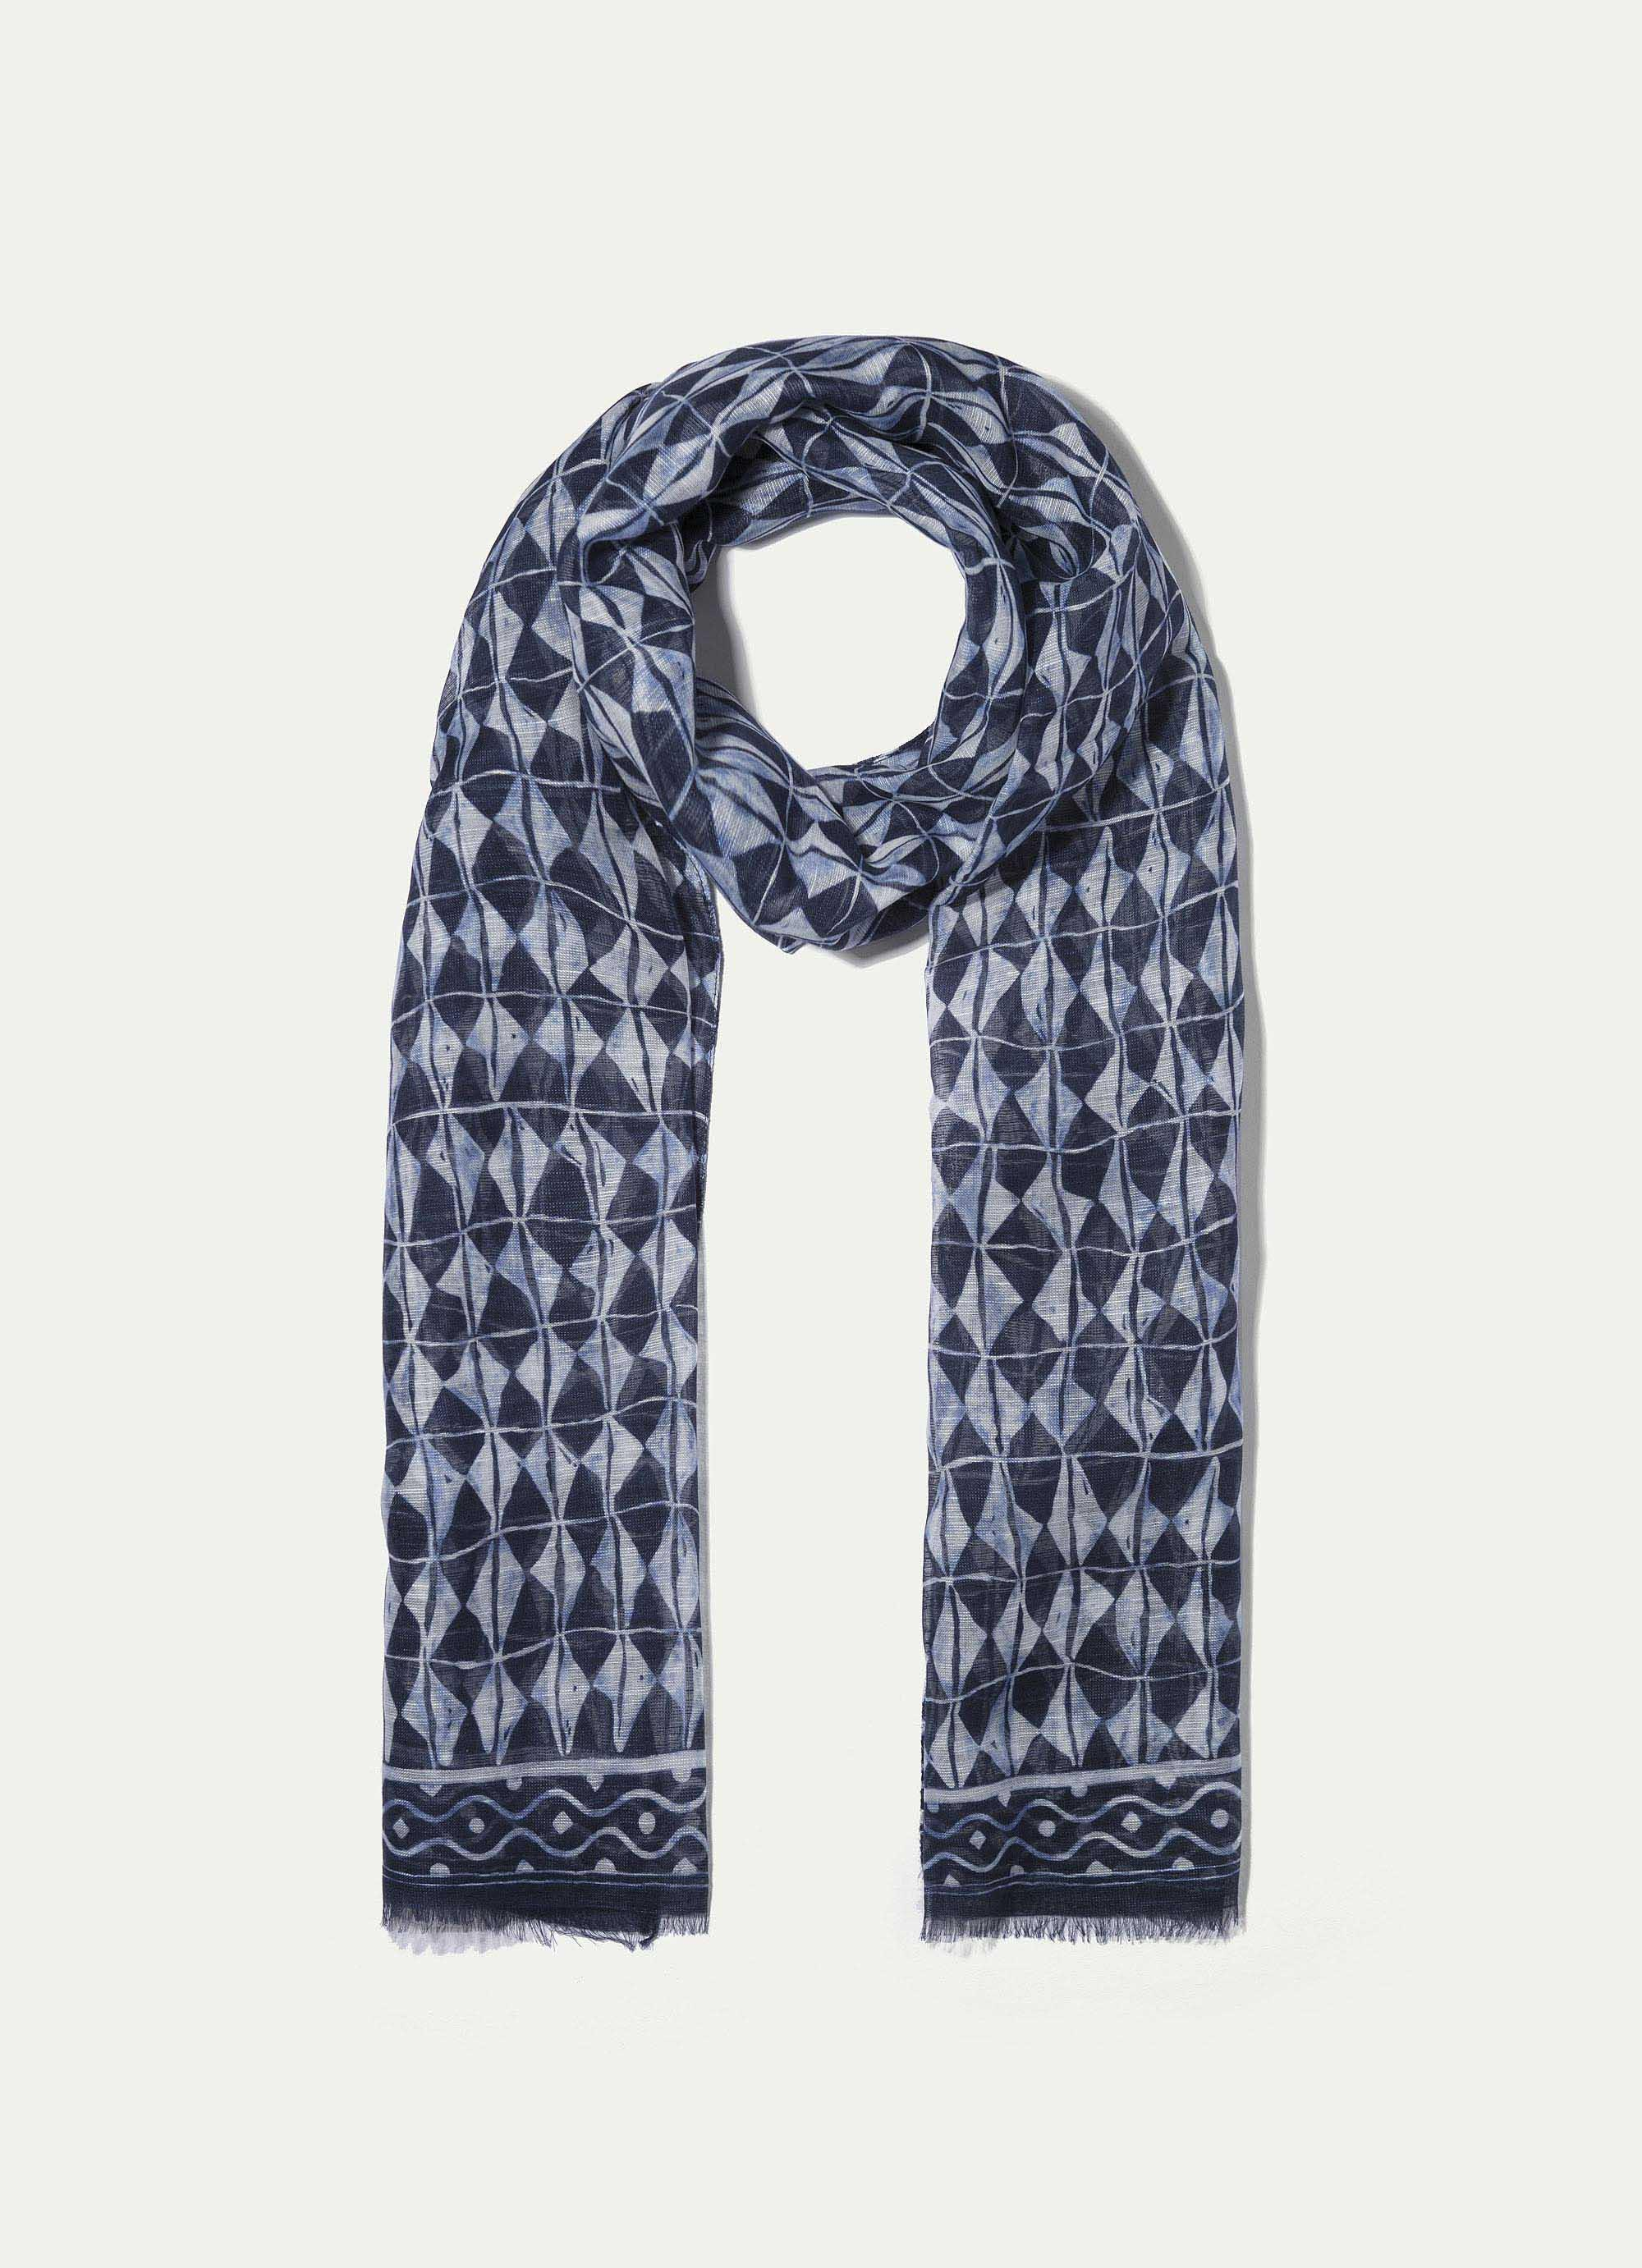 Hackett Patterned Cotton And Linen-blend Scarf In Navy/white